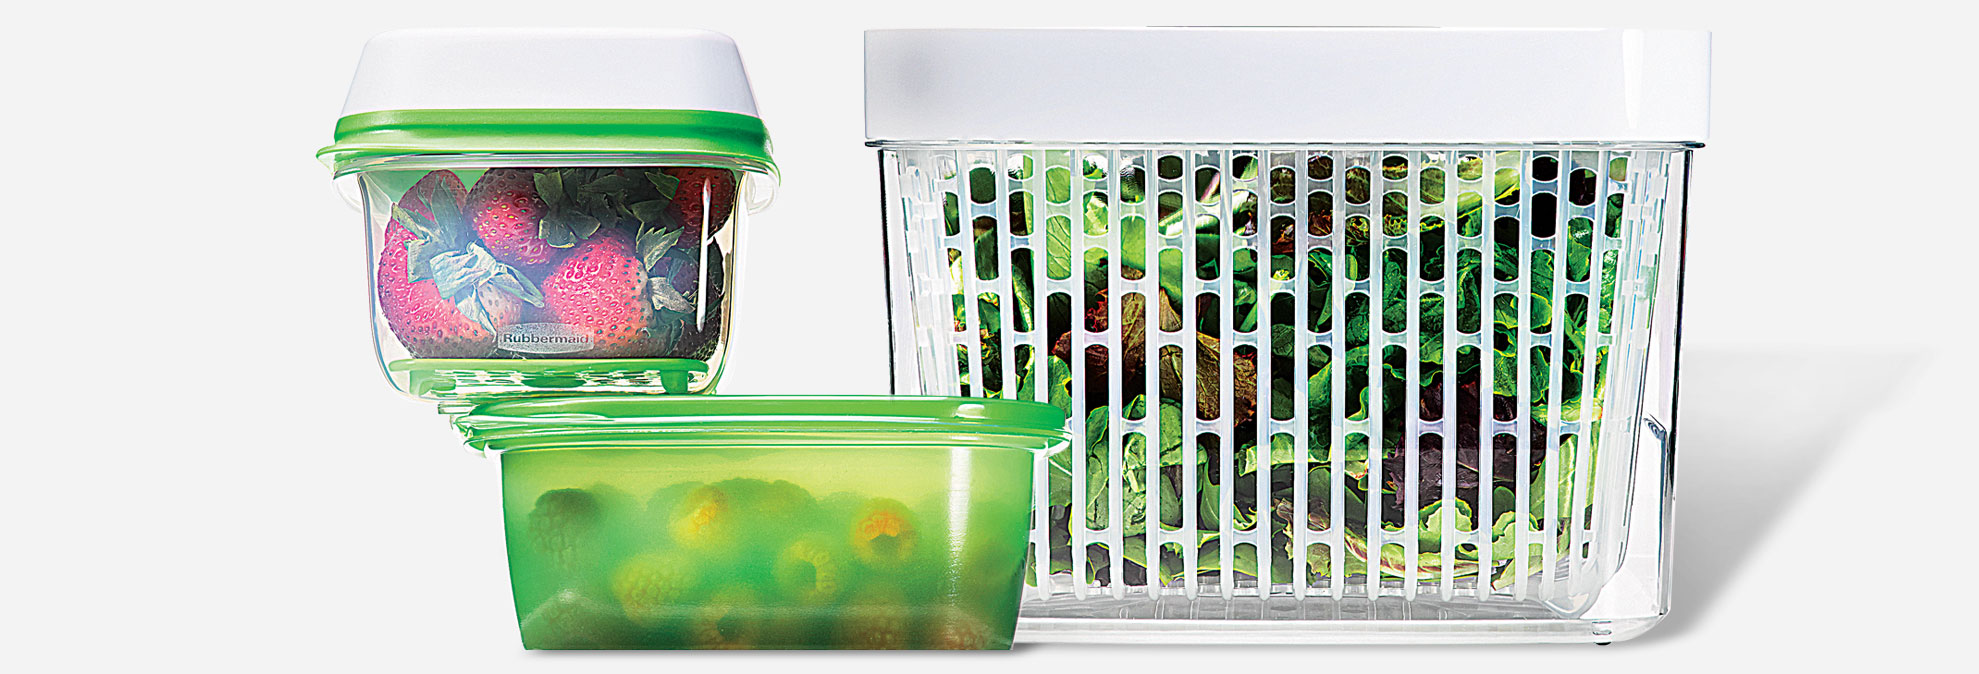 Can Food Storage Containers Keep Produce Fresh  Consumer